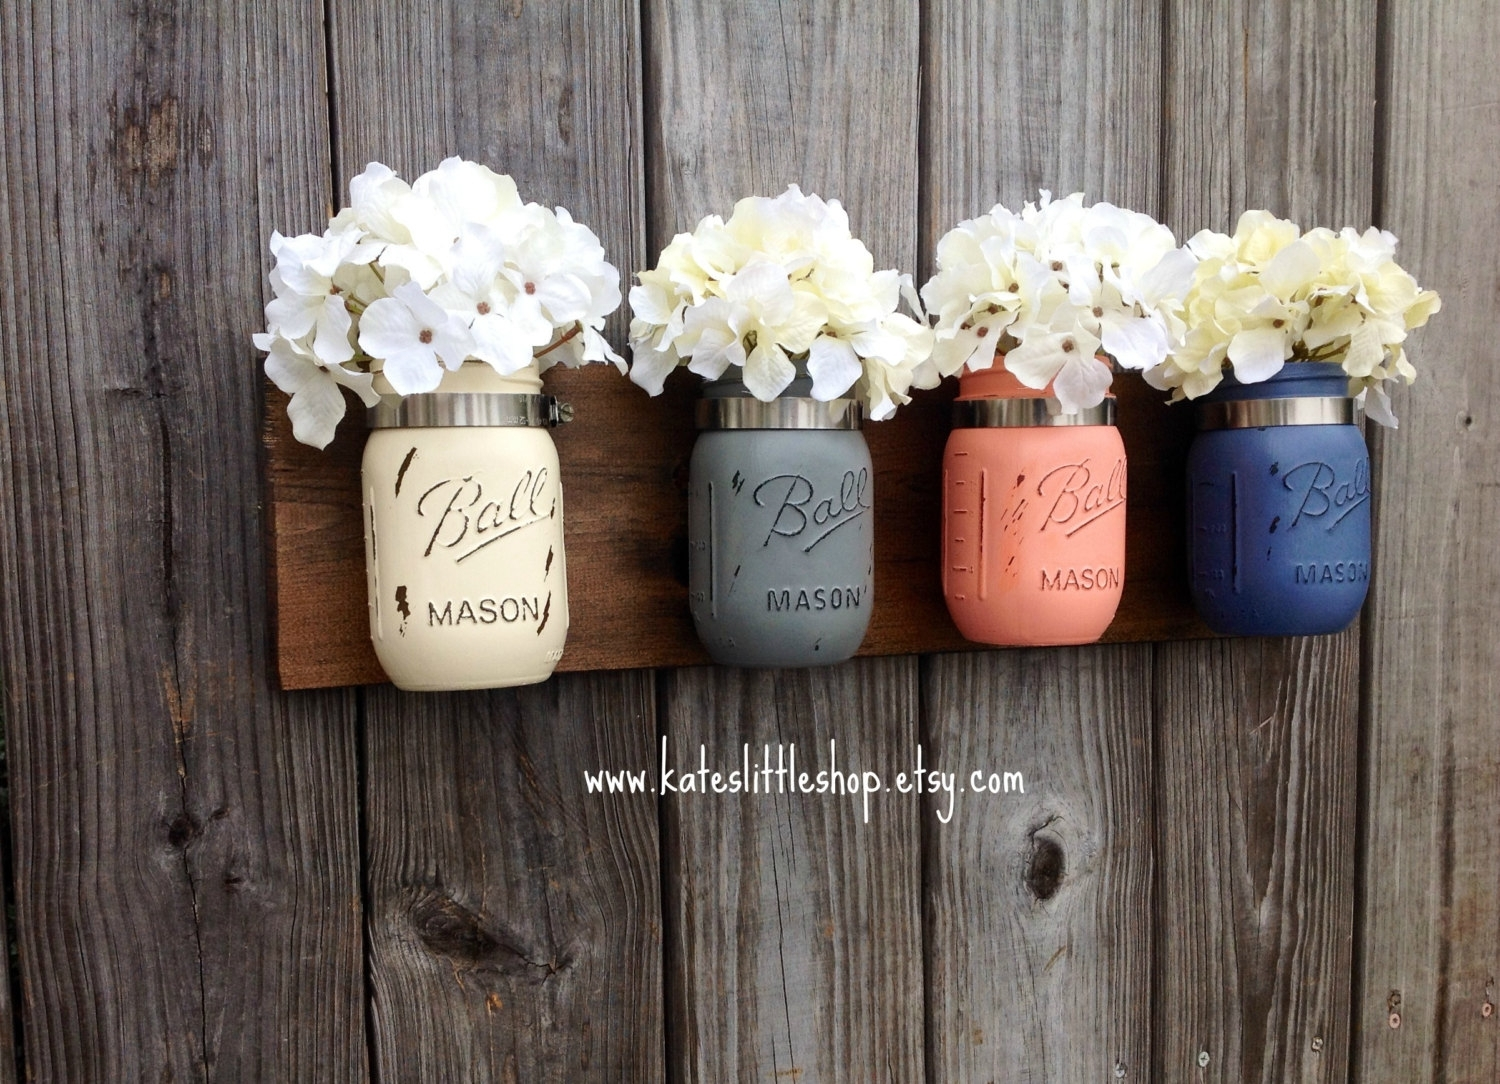 43 Mason Jar Wall Art, Burlap Buttons: Mason Jar Wall Decor with regard to Mason Jar Wall Art (Image 5 of 20)